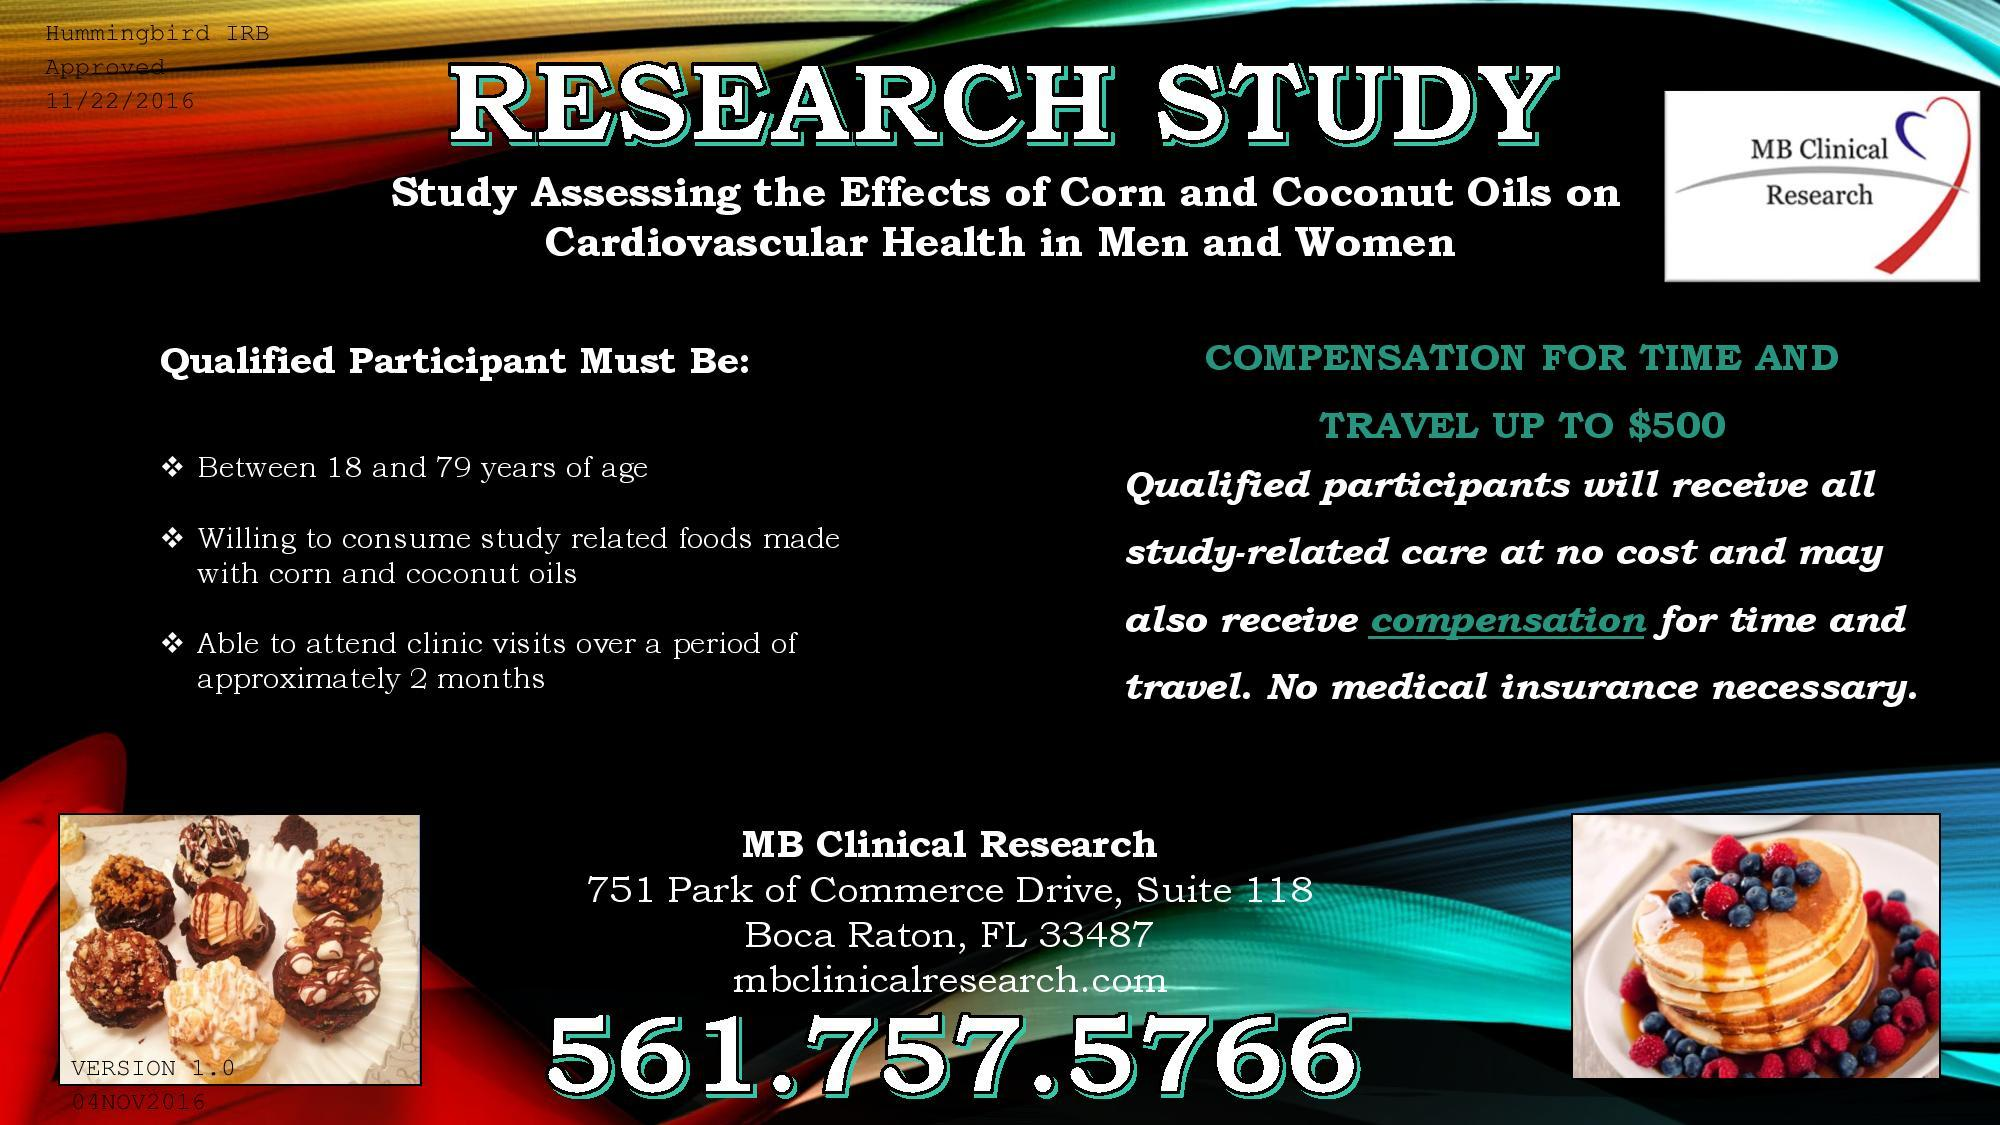 Study Assessing the Effects of Corn and Coconut Oils on Cardiovascular Health in Men and Women